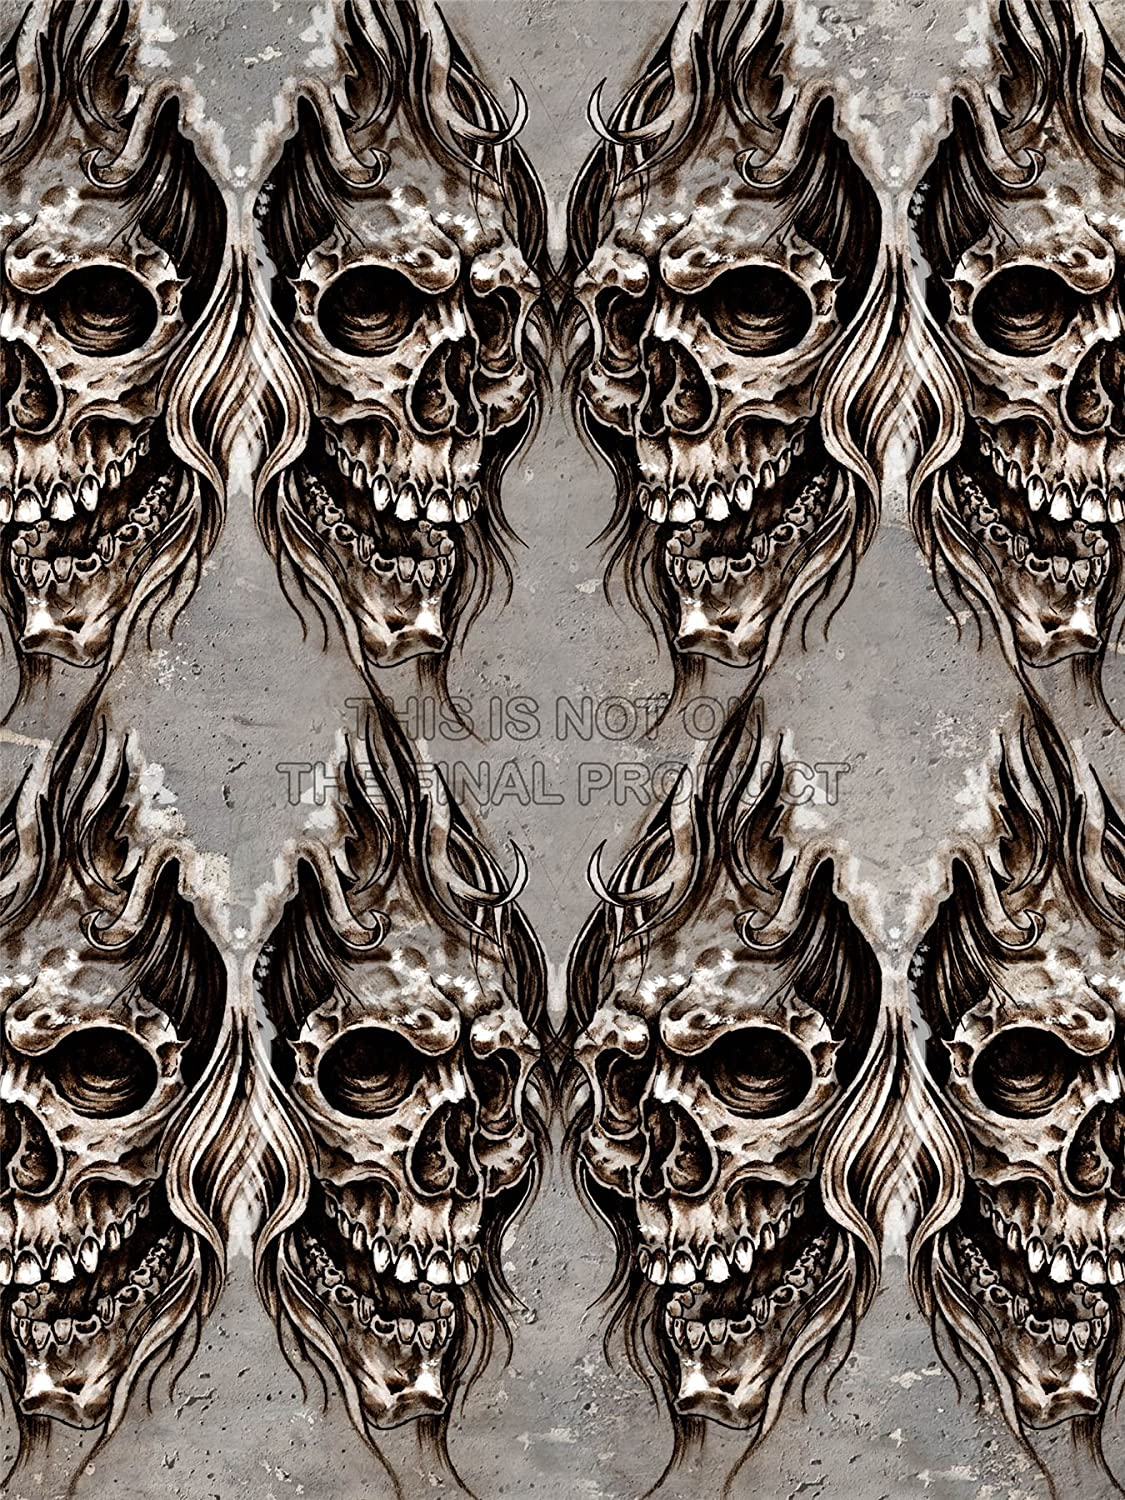 PAINTING DRAWING DESIGN TATTOO SKETCH CREEPY SKULL WALL ART ...